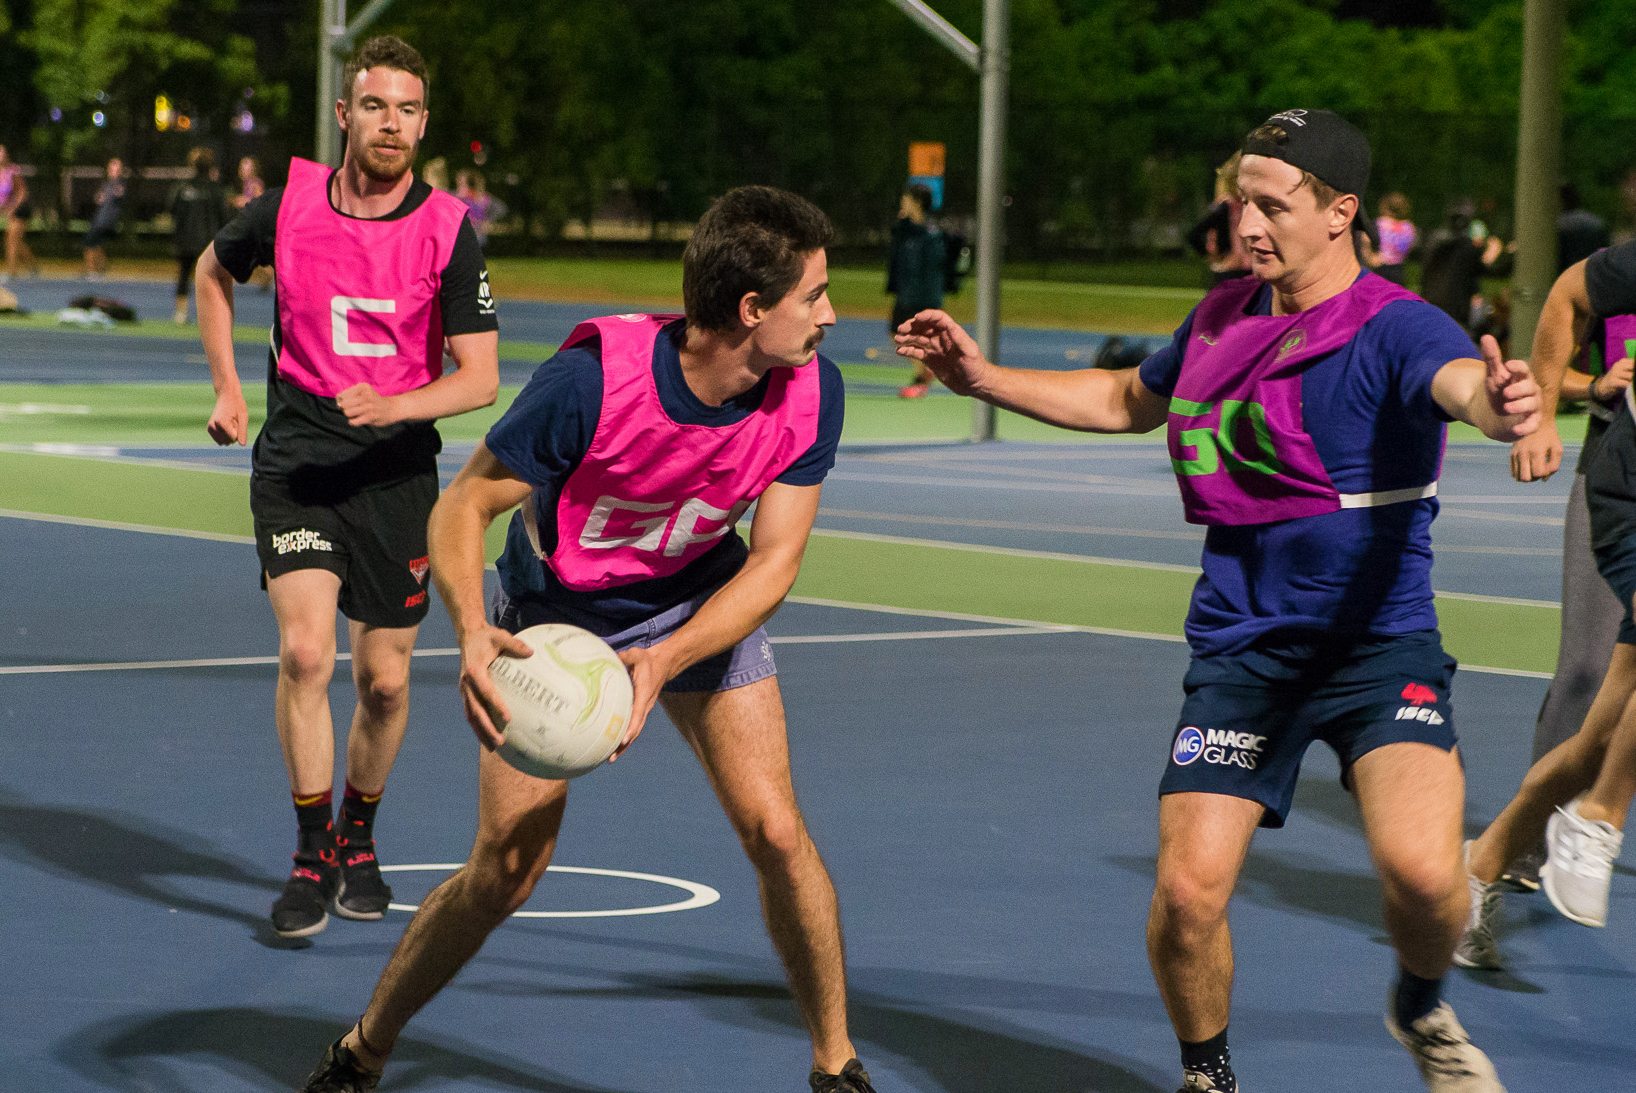 Men play a game of netball.